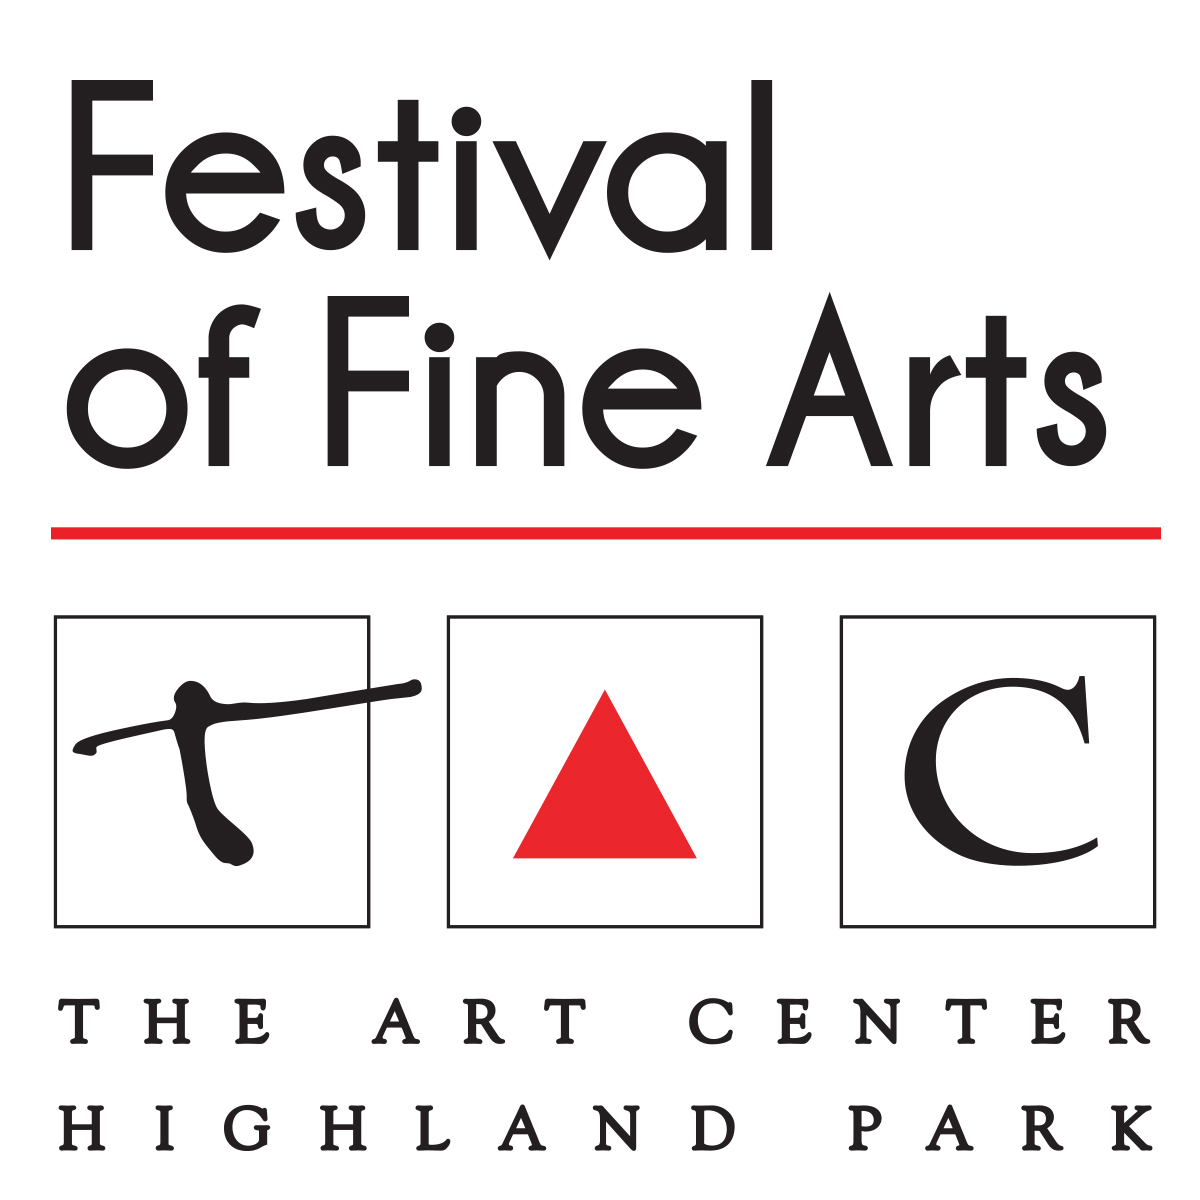 The Art Center's Festival of Fine Craft